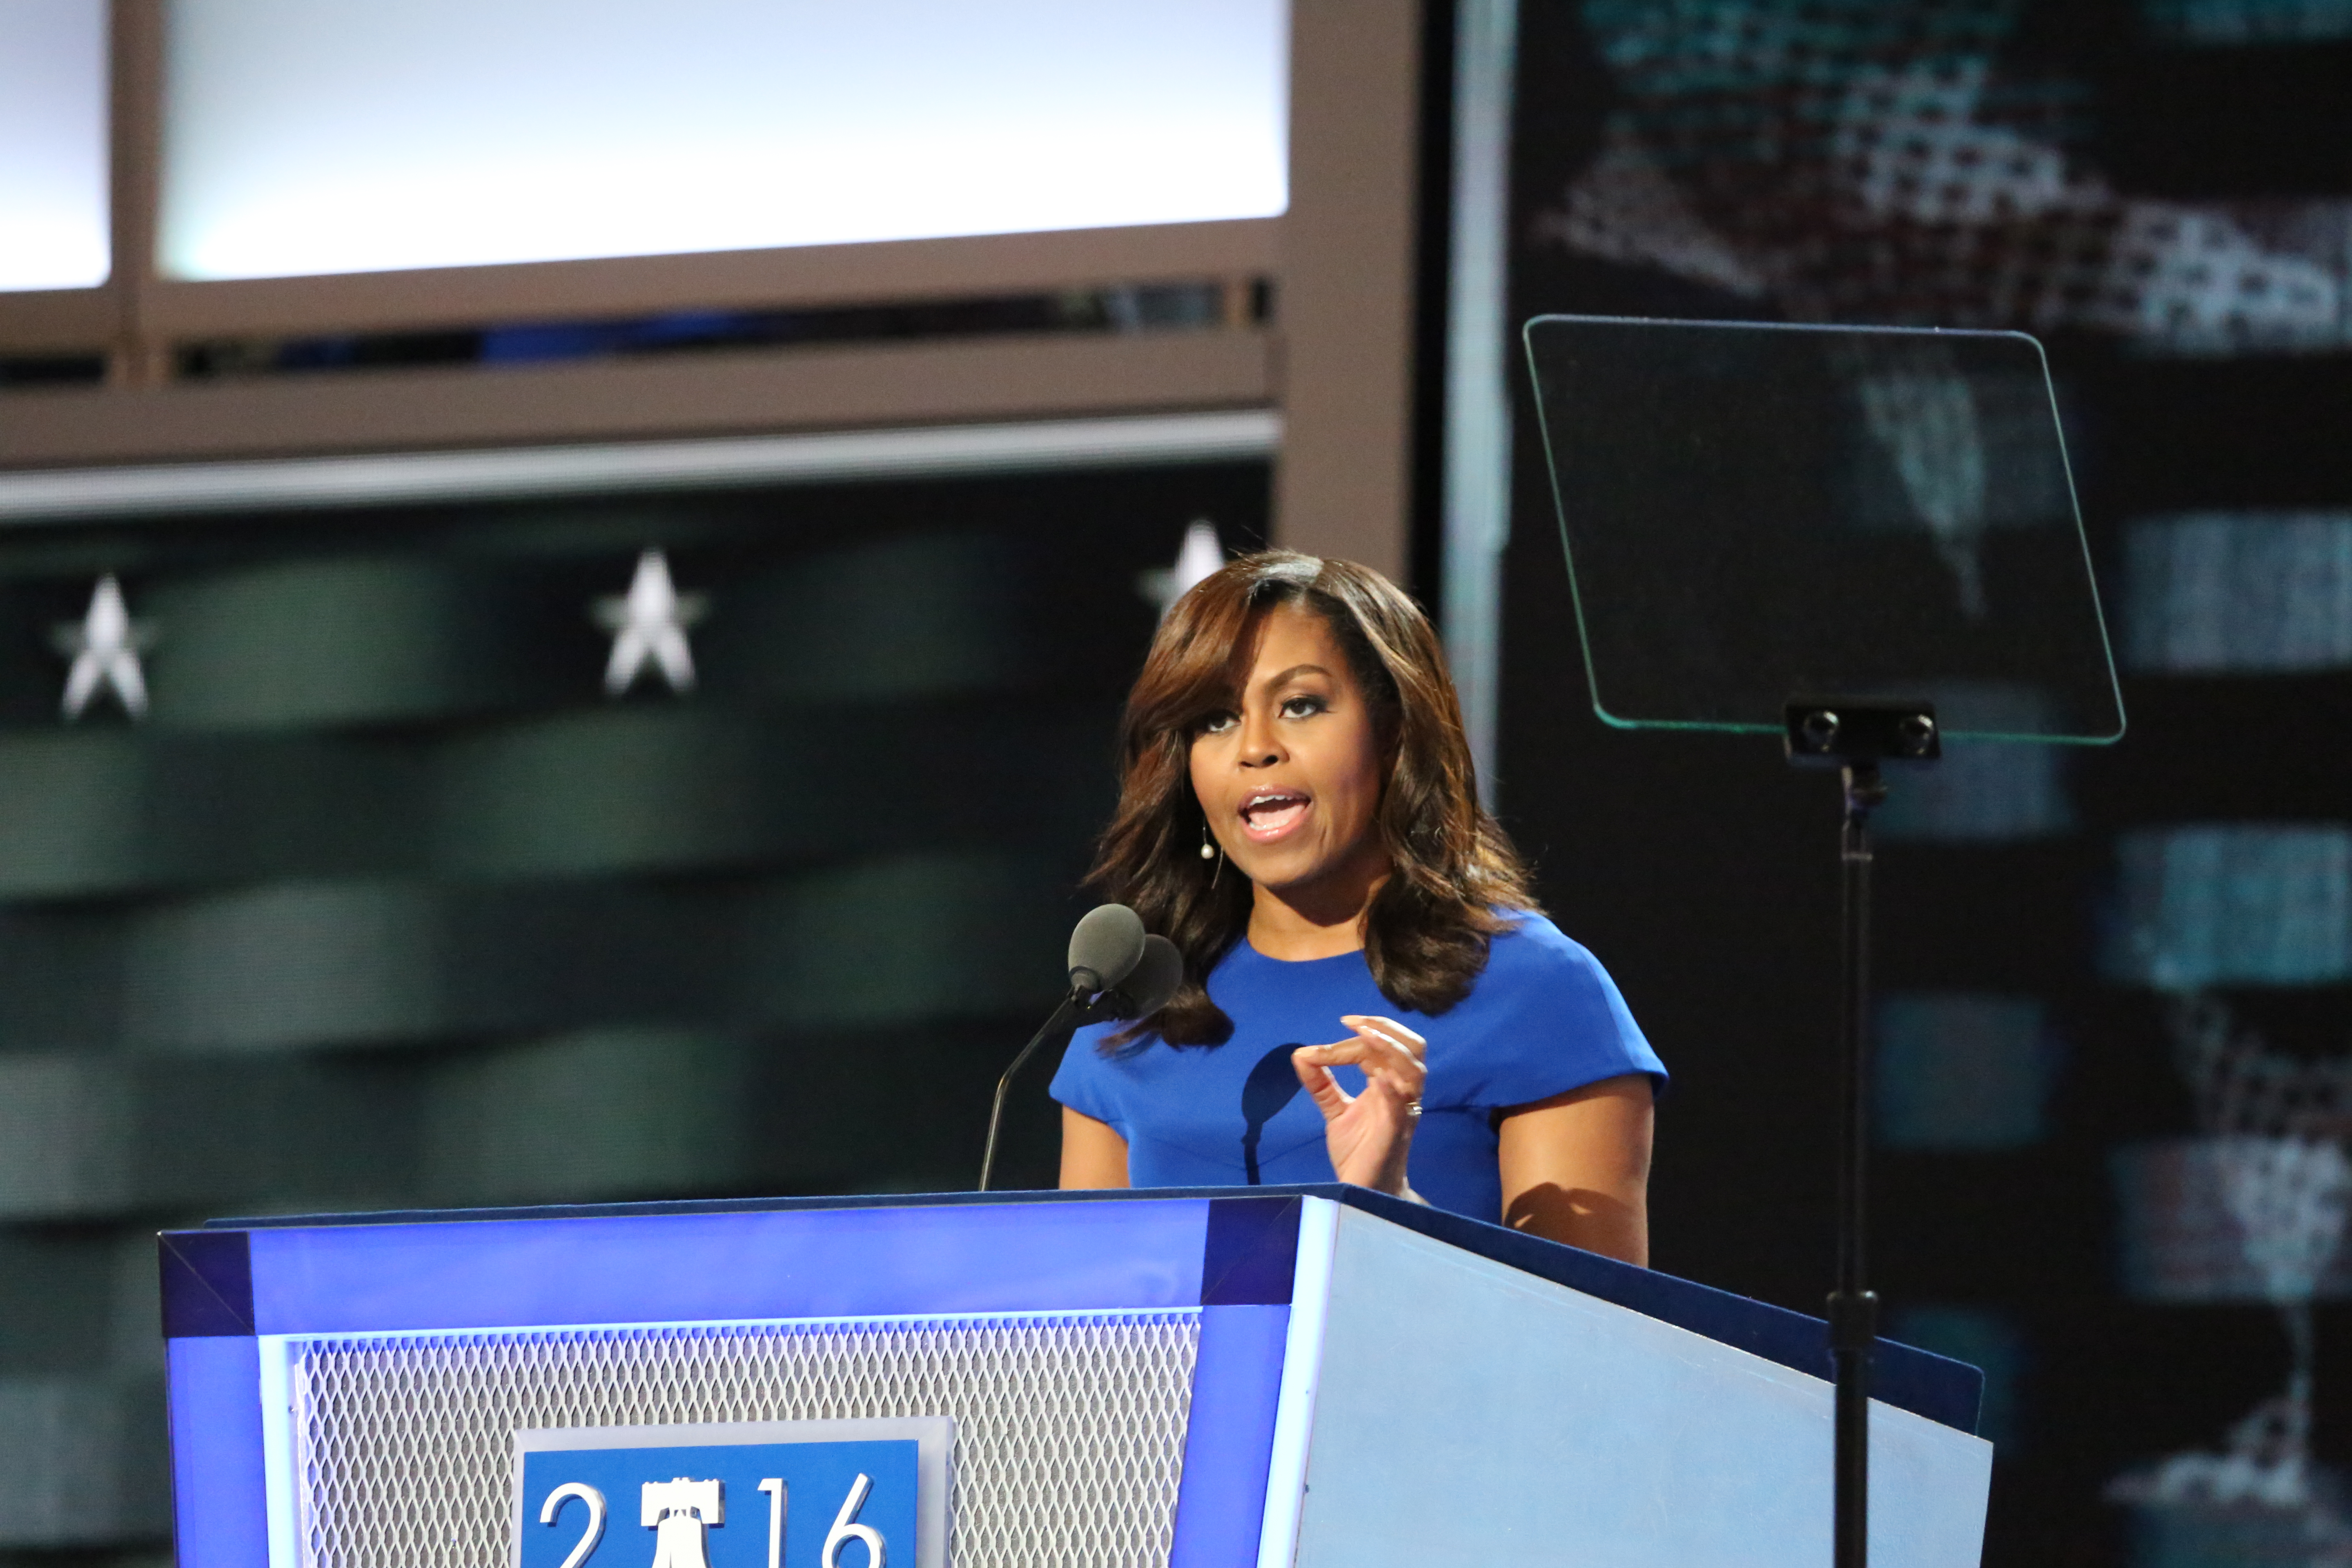 First lady Michelle Obama, speaking at the Democratic National Convention in Philadelphia, Pa., tells the audience, 'Don't let anyone ever tell you that this country isn't great.' (A. Shaker/VOA)